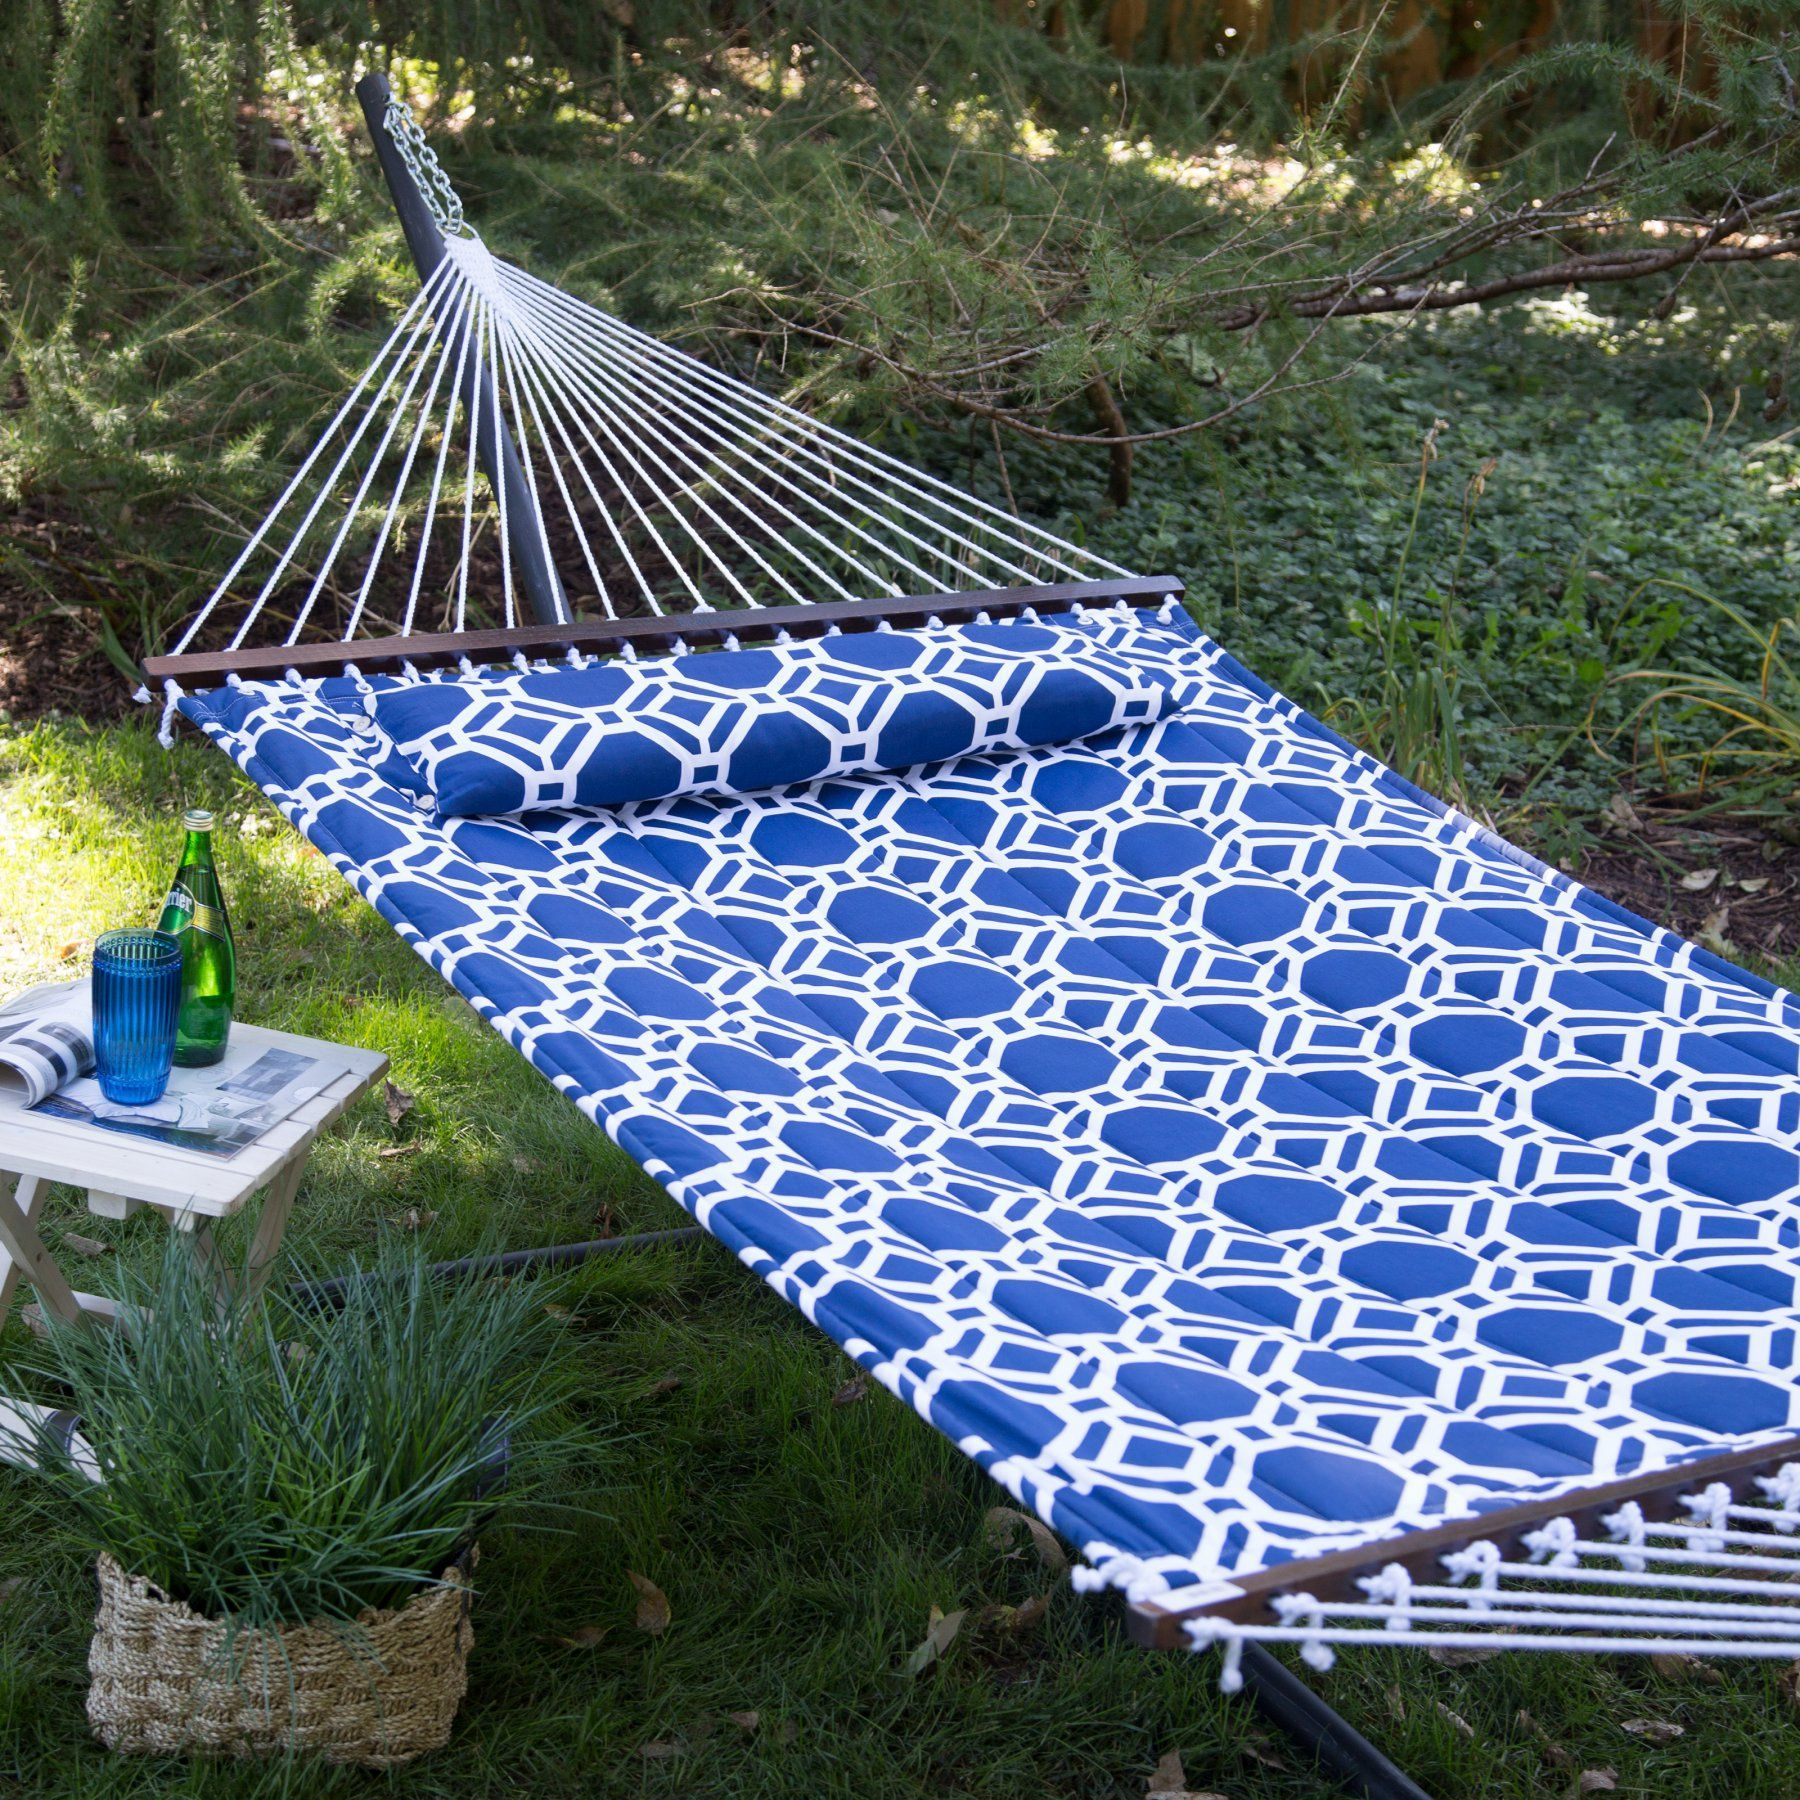 Island bay ft hampton lattice quilted hammock with steel stand